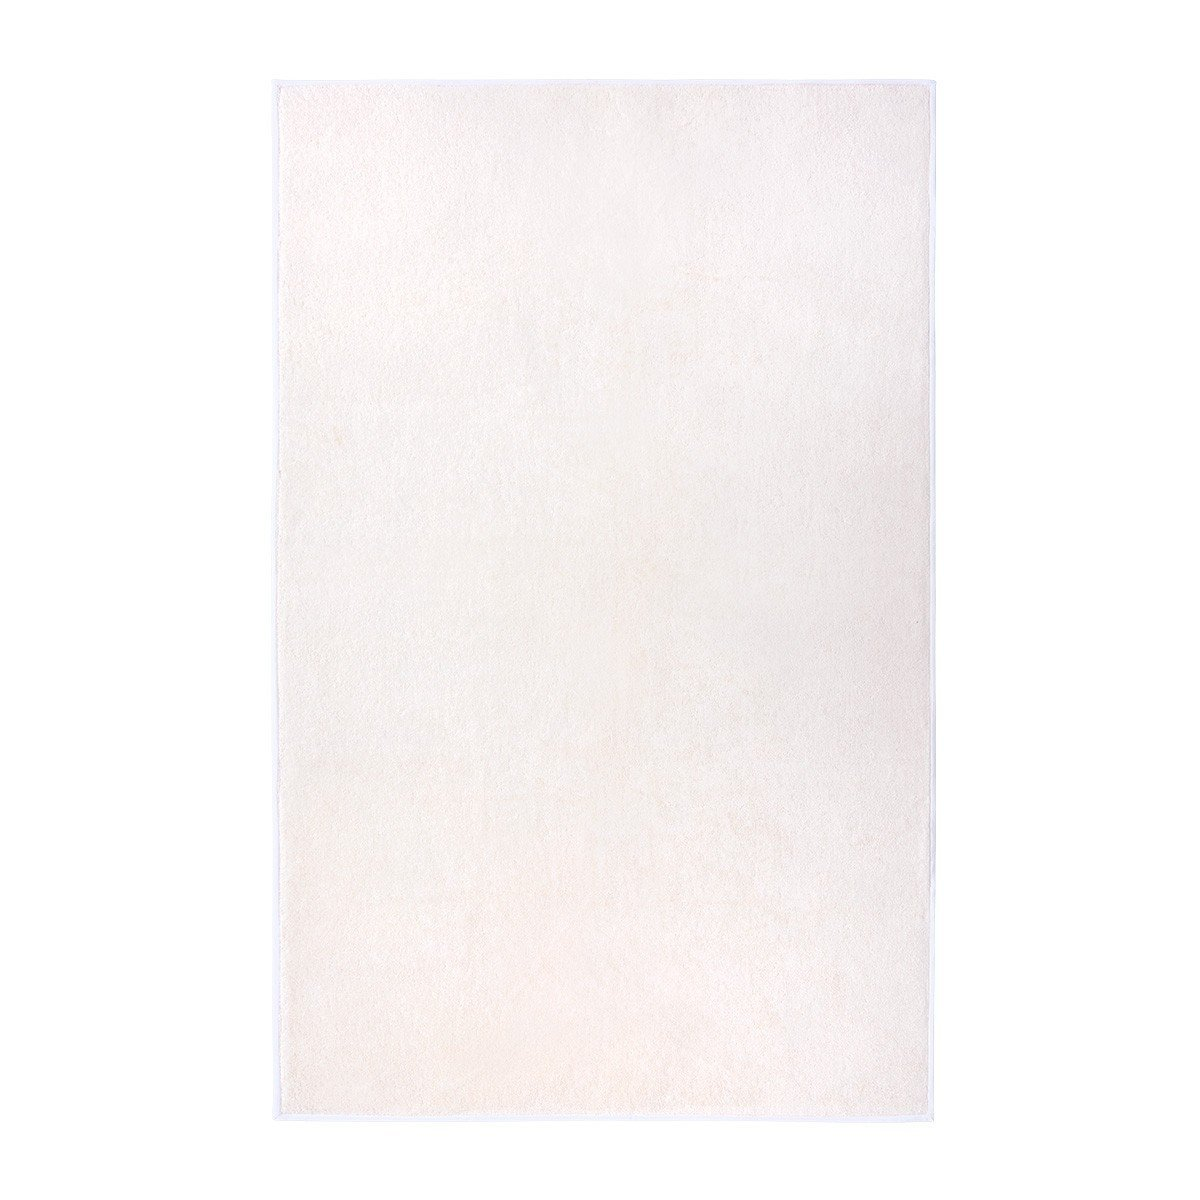 Adagio Perle Bath Collection by Yves Delorme | Fig Linens - Ivory Bath Linen - bath sheet